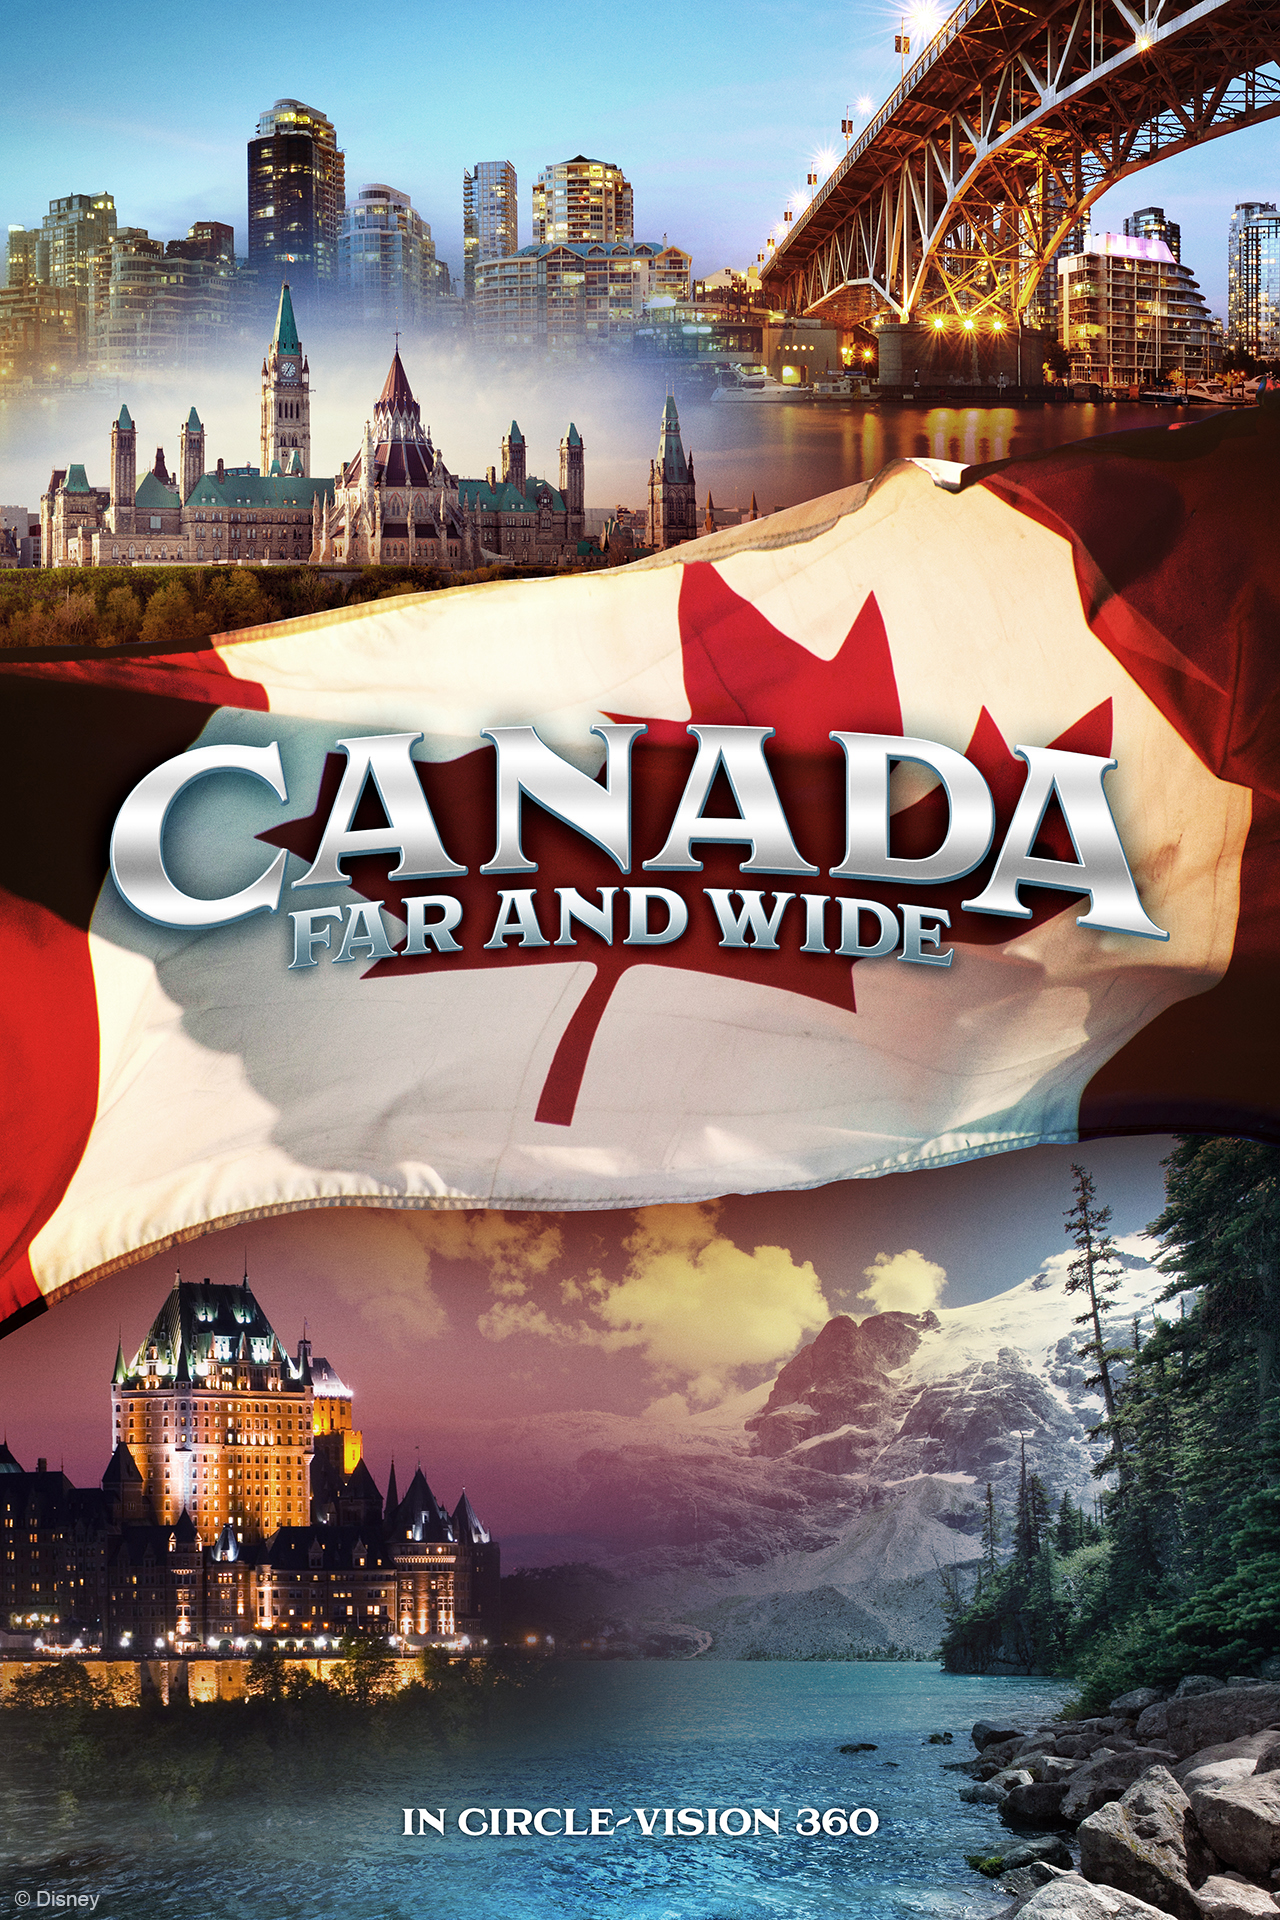 Canada Far and Wide poster